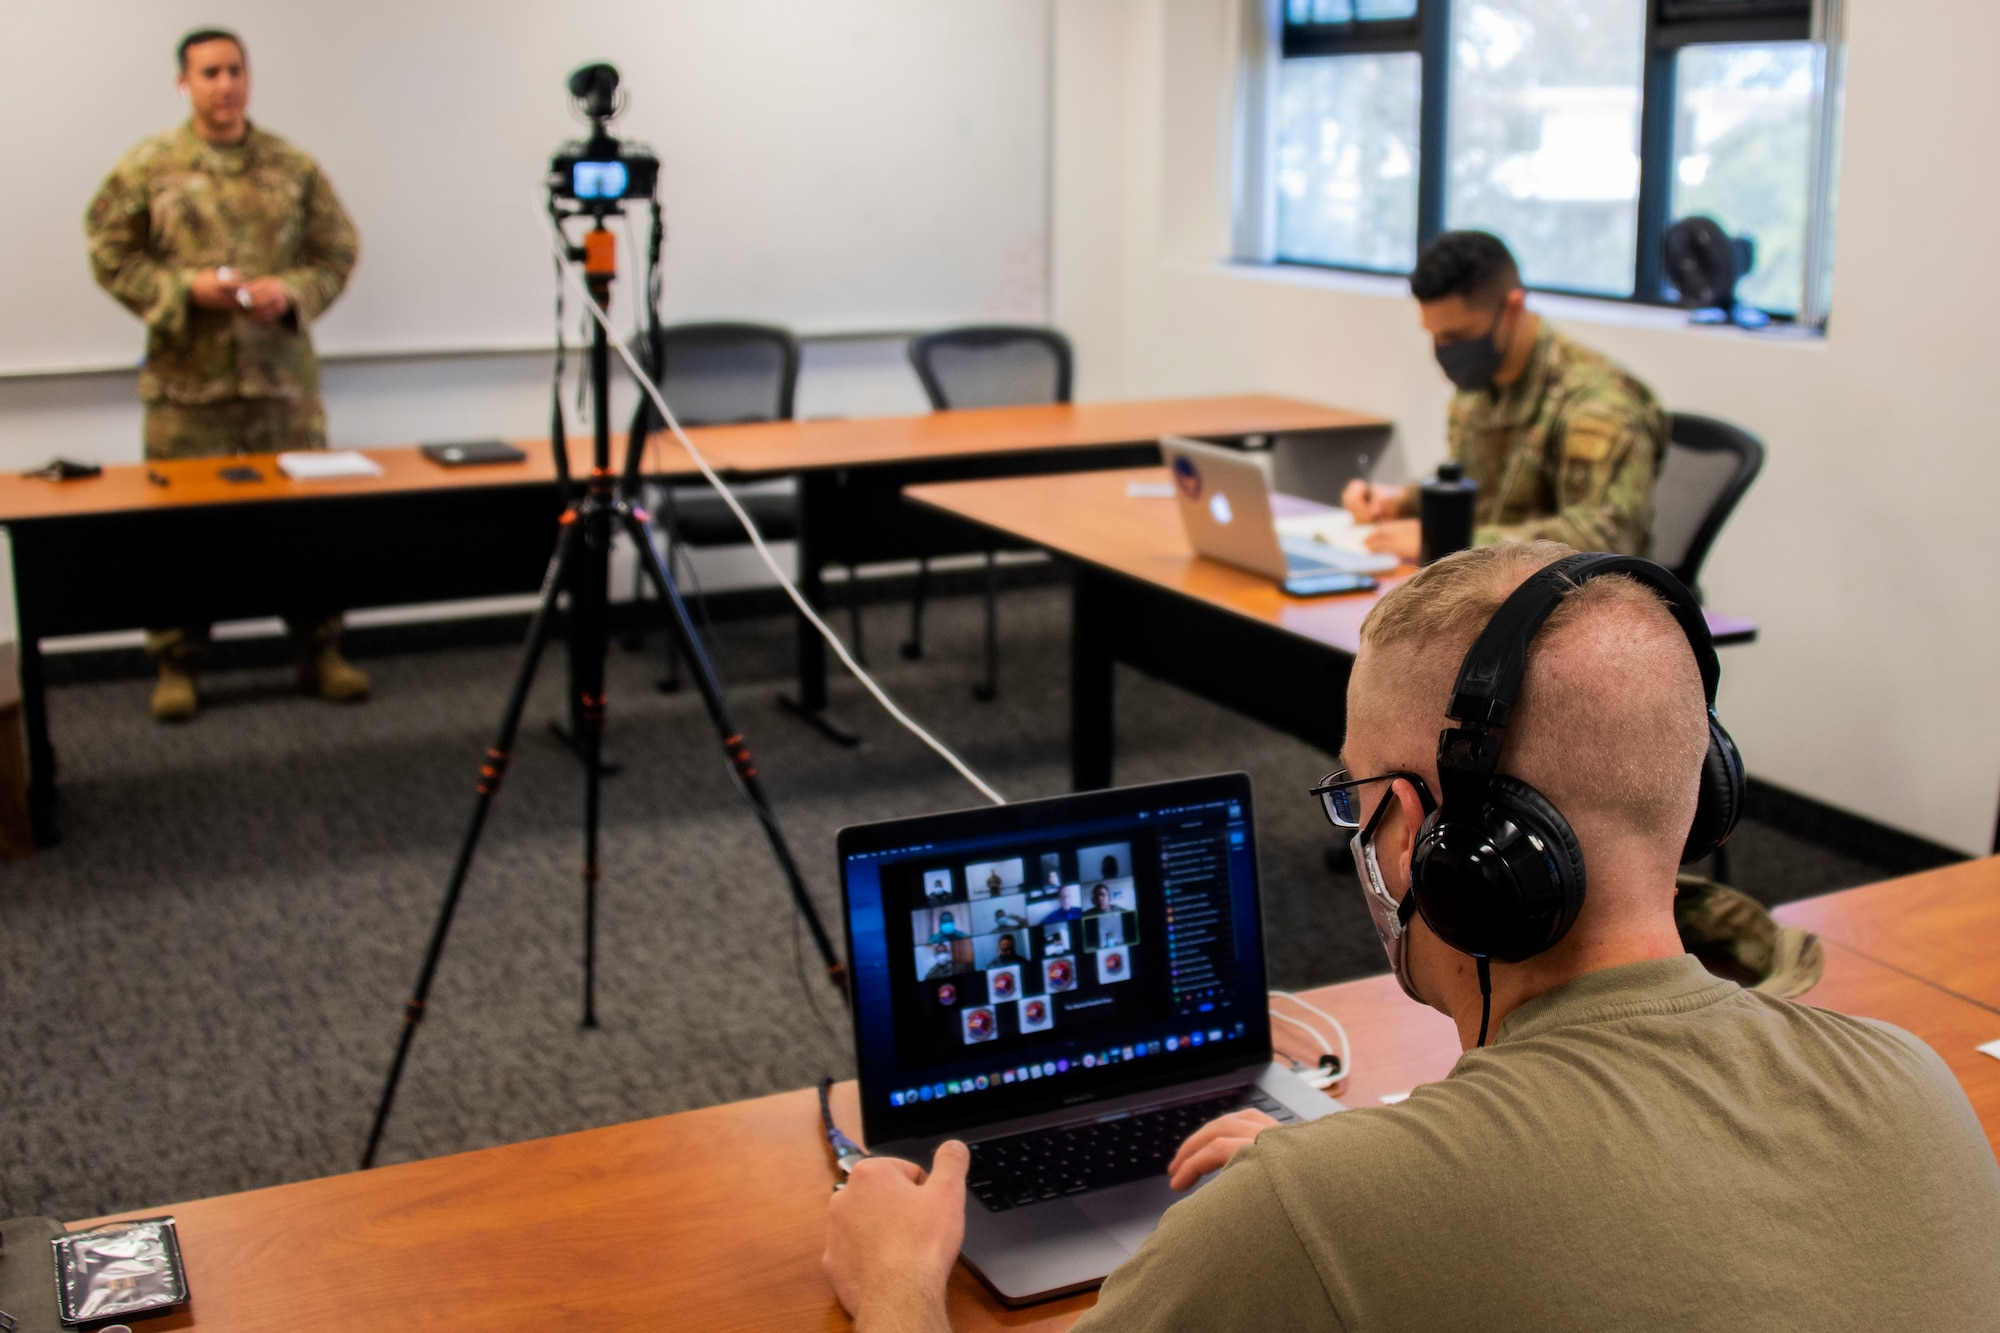 Capt. Matthew Schnarrs, 571st Mobility Support Advisory Squadron course facilitator, observes as Tech. Sgt. Larry Diaz, 571st MSAS instructor, gives a briefing on command and control operations during a virtual engagement with the National Aeronaval Service of Panama Sept. 1, 2020, at Travis Air Force Base in California. The two-week engagement is their first time using a virtual medium to train a partner nation and consists of an introductory command and control course and a multi-topic airfield operations course. (U.S. Air Force photo by Tech. Sgt. Liliana Moreno)